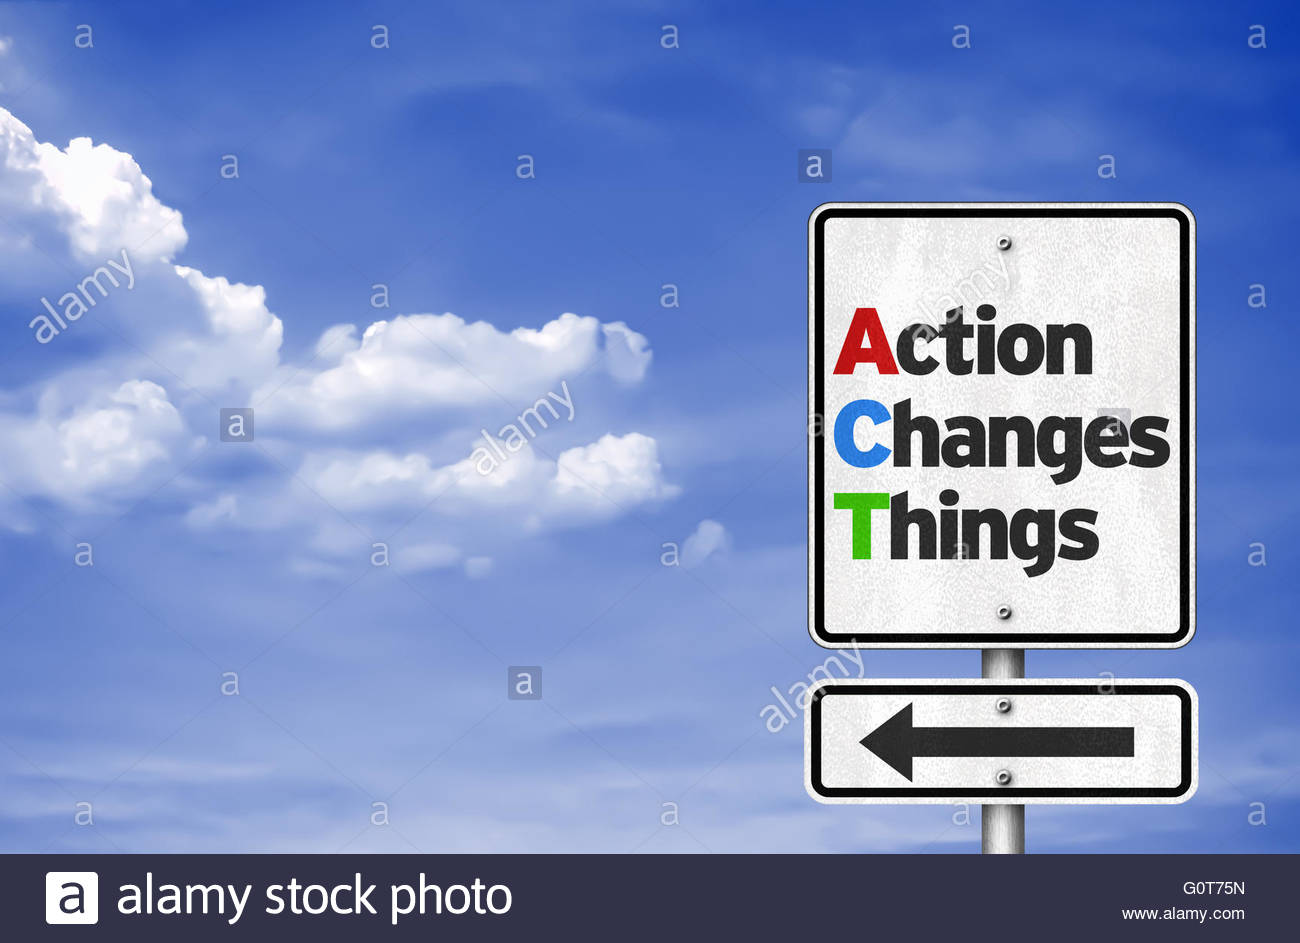 Action Changes Things - road sign concept Stock Photo